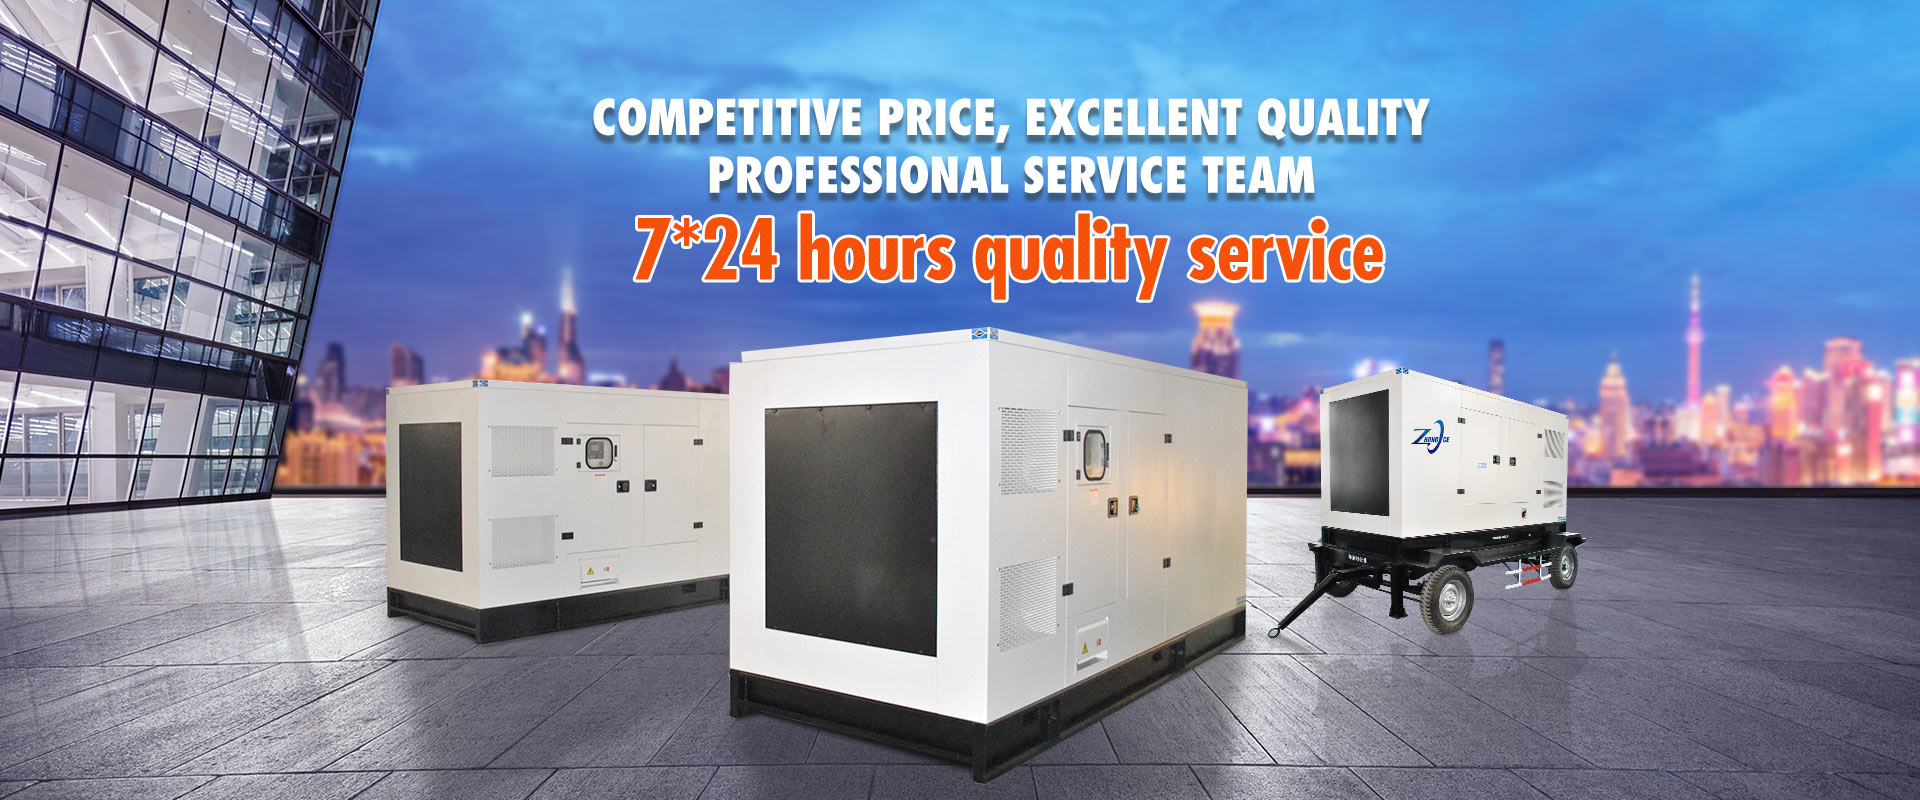 7*24 hours quality service